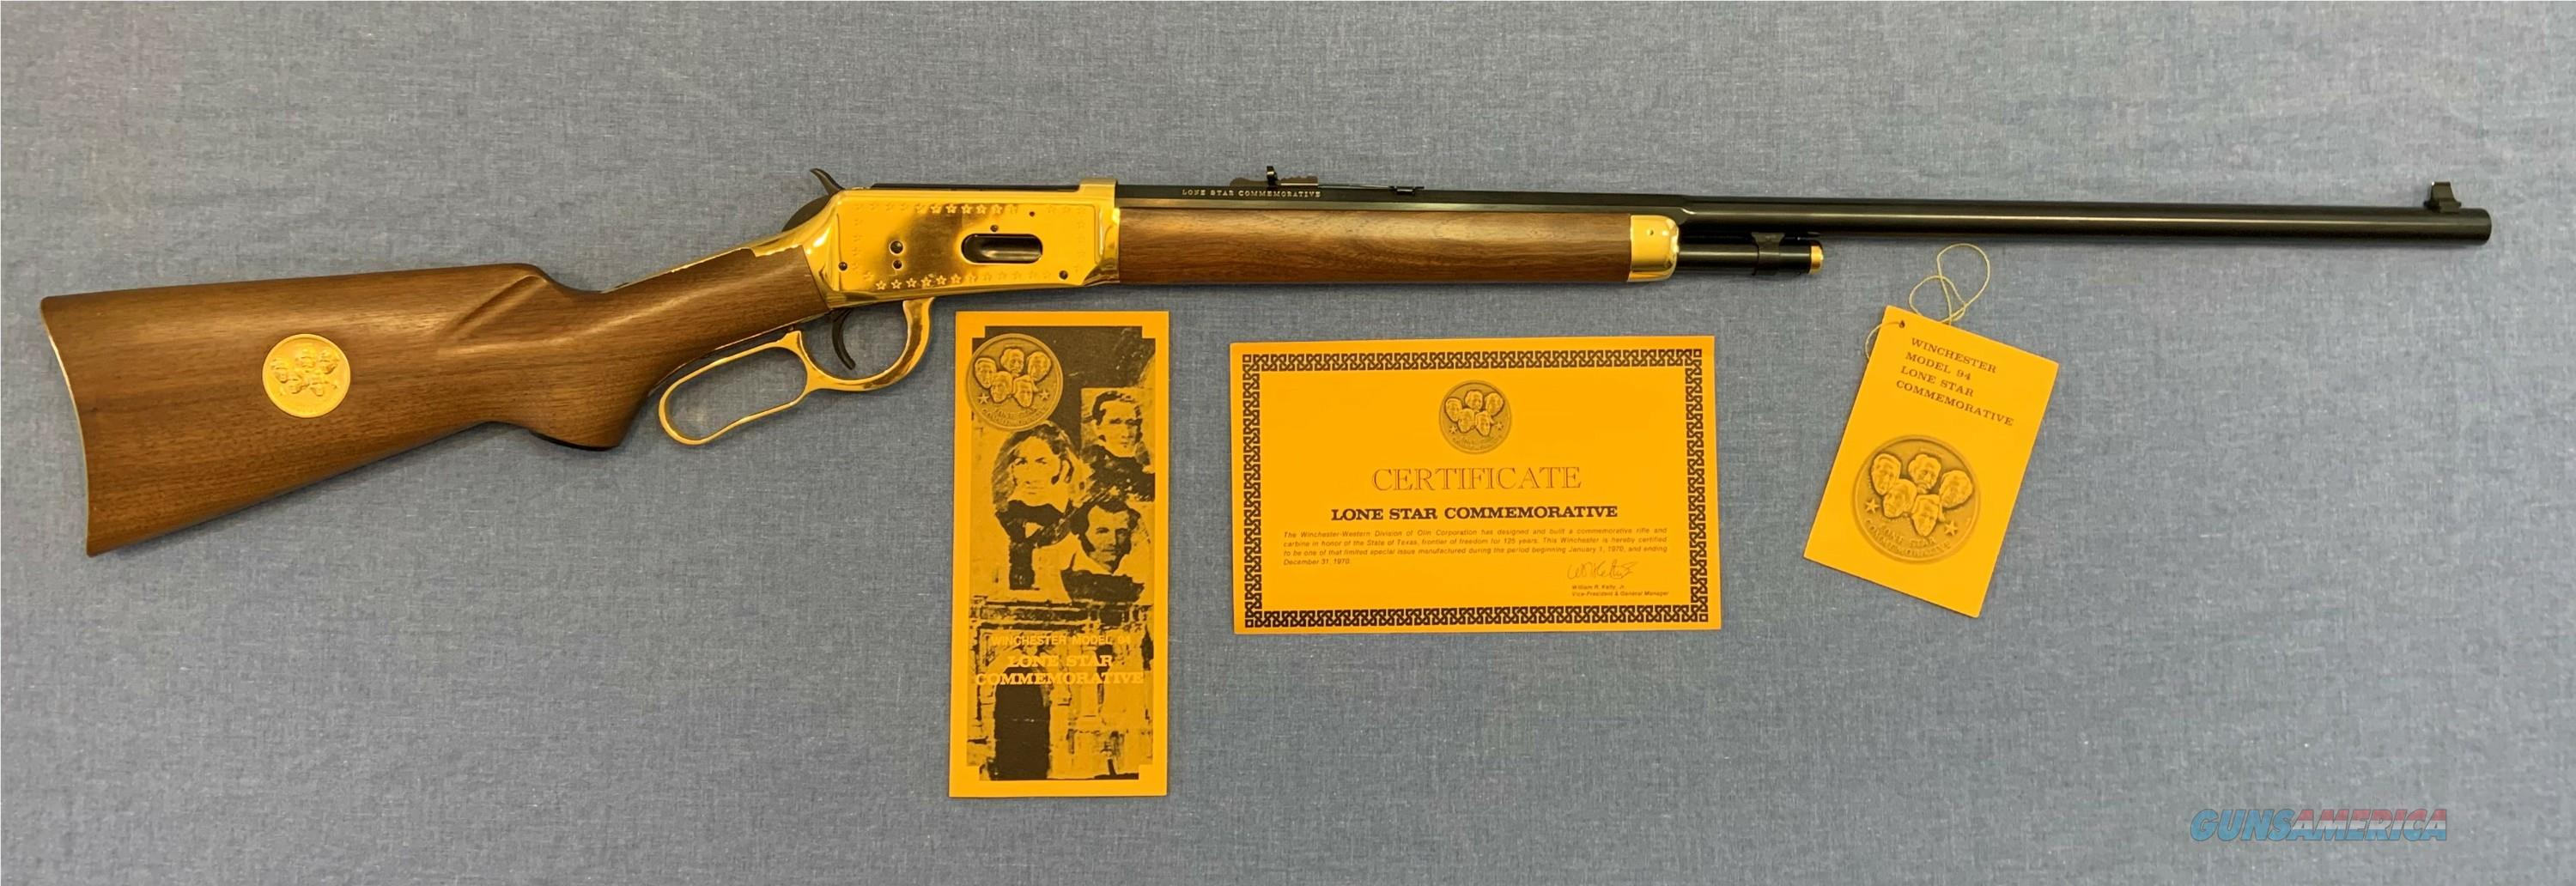 Winchester 94  Lone Star Commemorative 30-30 NIB   Guns > Rifles > Winchester Rifle Commemoratives